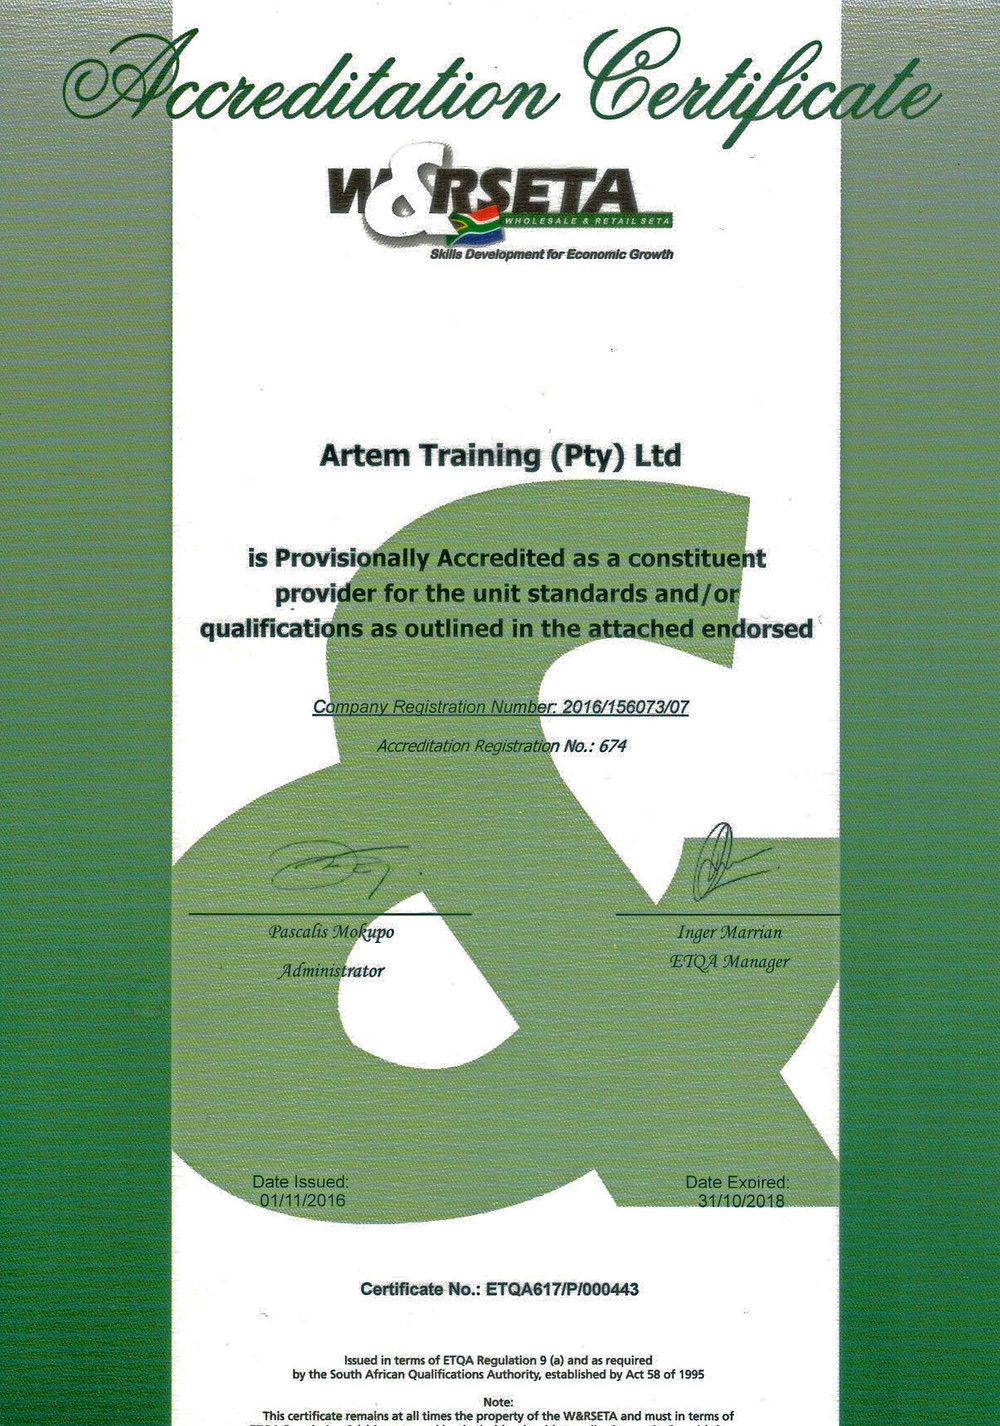 Artem Training WR SETA Accreditation Certificate